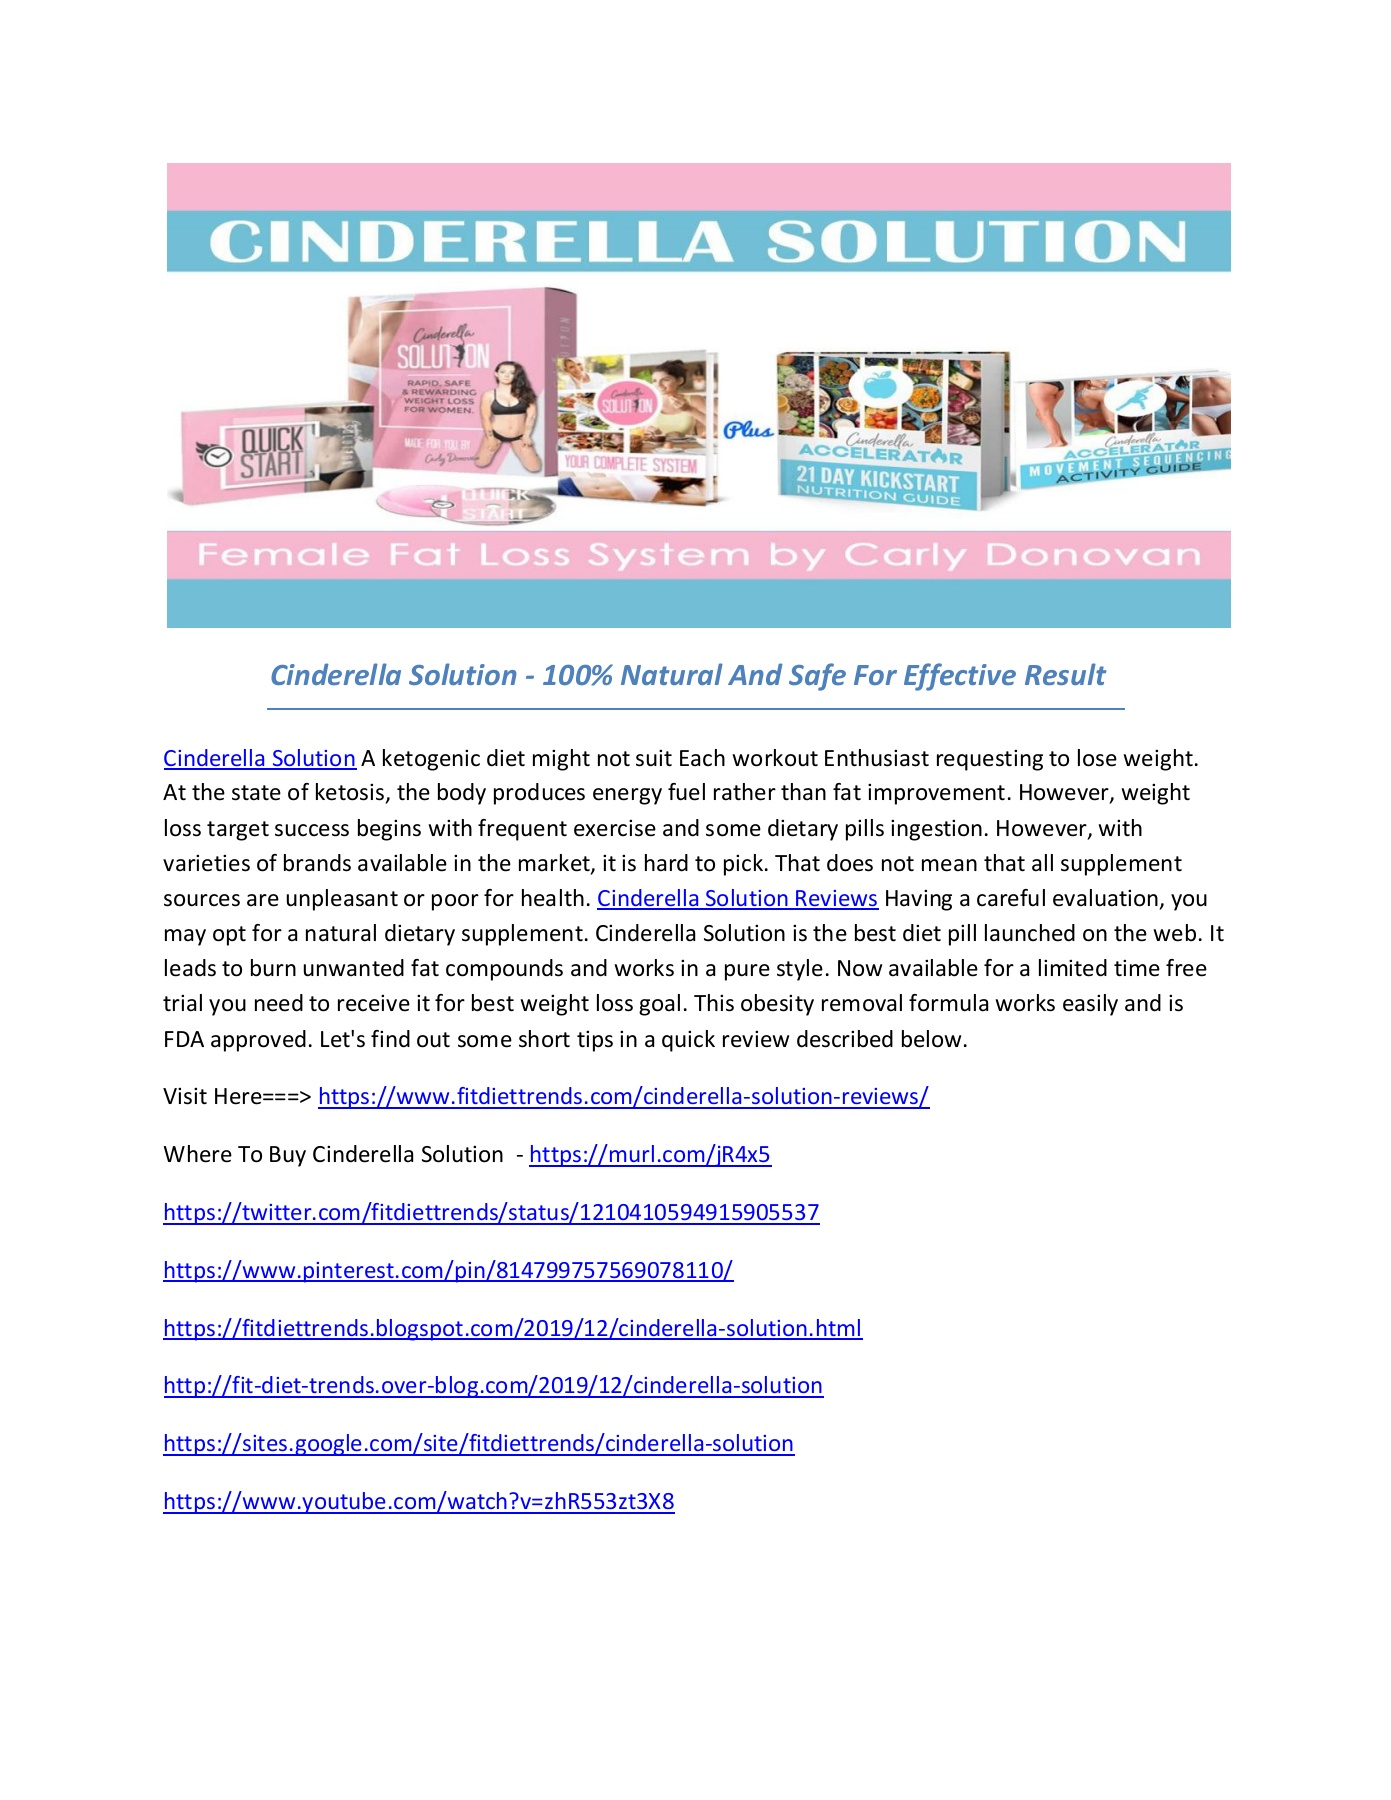 Memorial Day Cinderella Solution Deals March